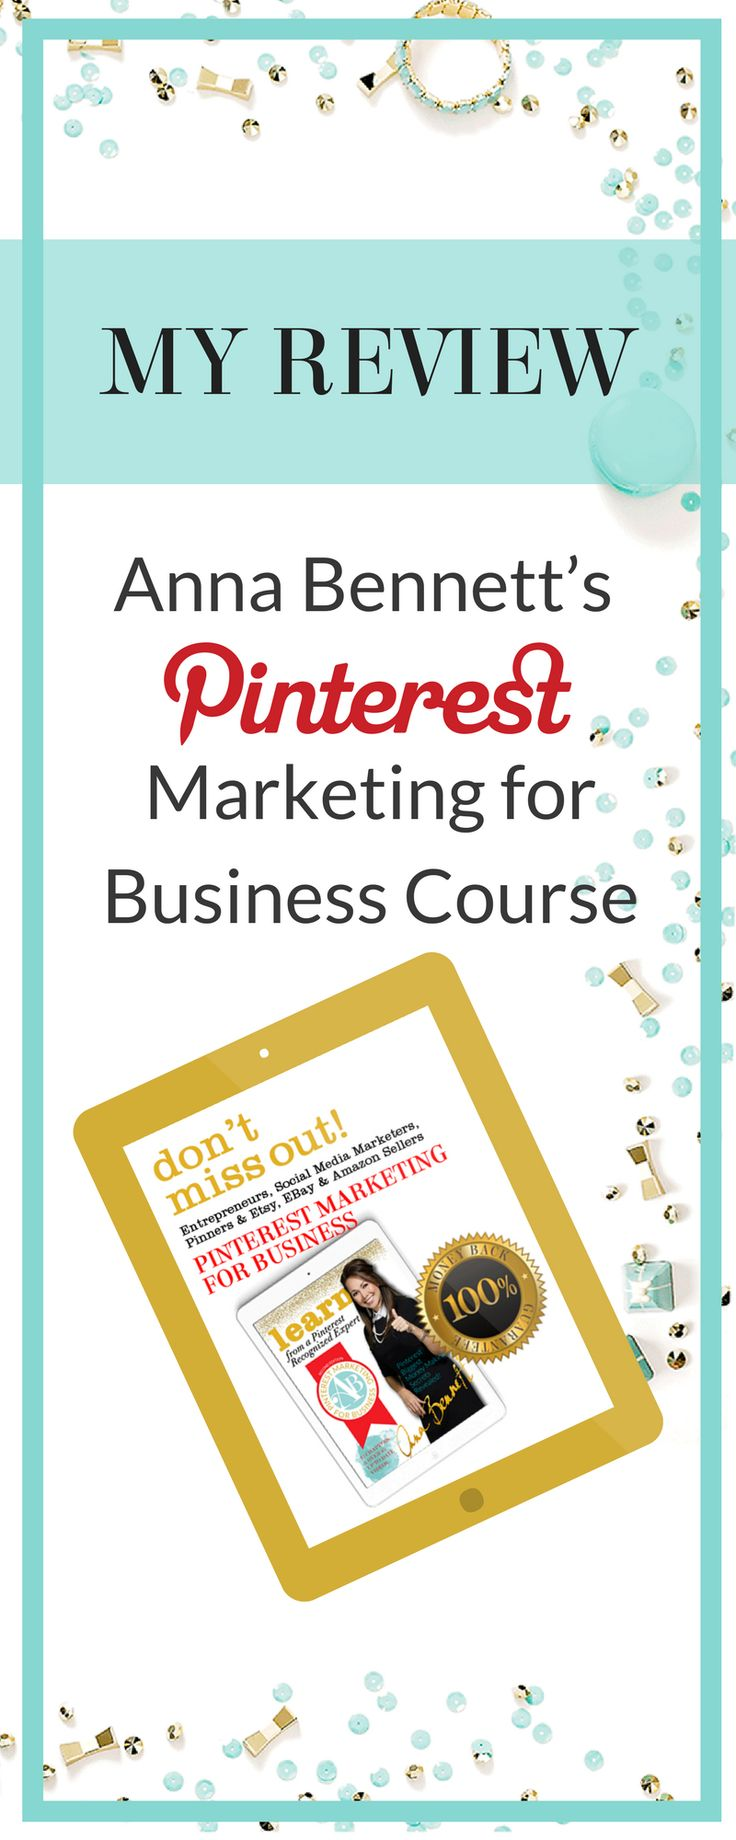 Pinterest expert Anna Bennett's unique teaching methods and easy-to-follow tips & tricks make her Pinterest course one of the best on the web. Let's take a look at what you can expect when you sign up for Anna Bennett's Pinterest Marketing for Business Course. Check it out here https://ecommercefastlane.com/pinterest-marketing-for-business-course/#   Social Media Tips   How to Get   How to Use   Entrepreneur Articles + Products